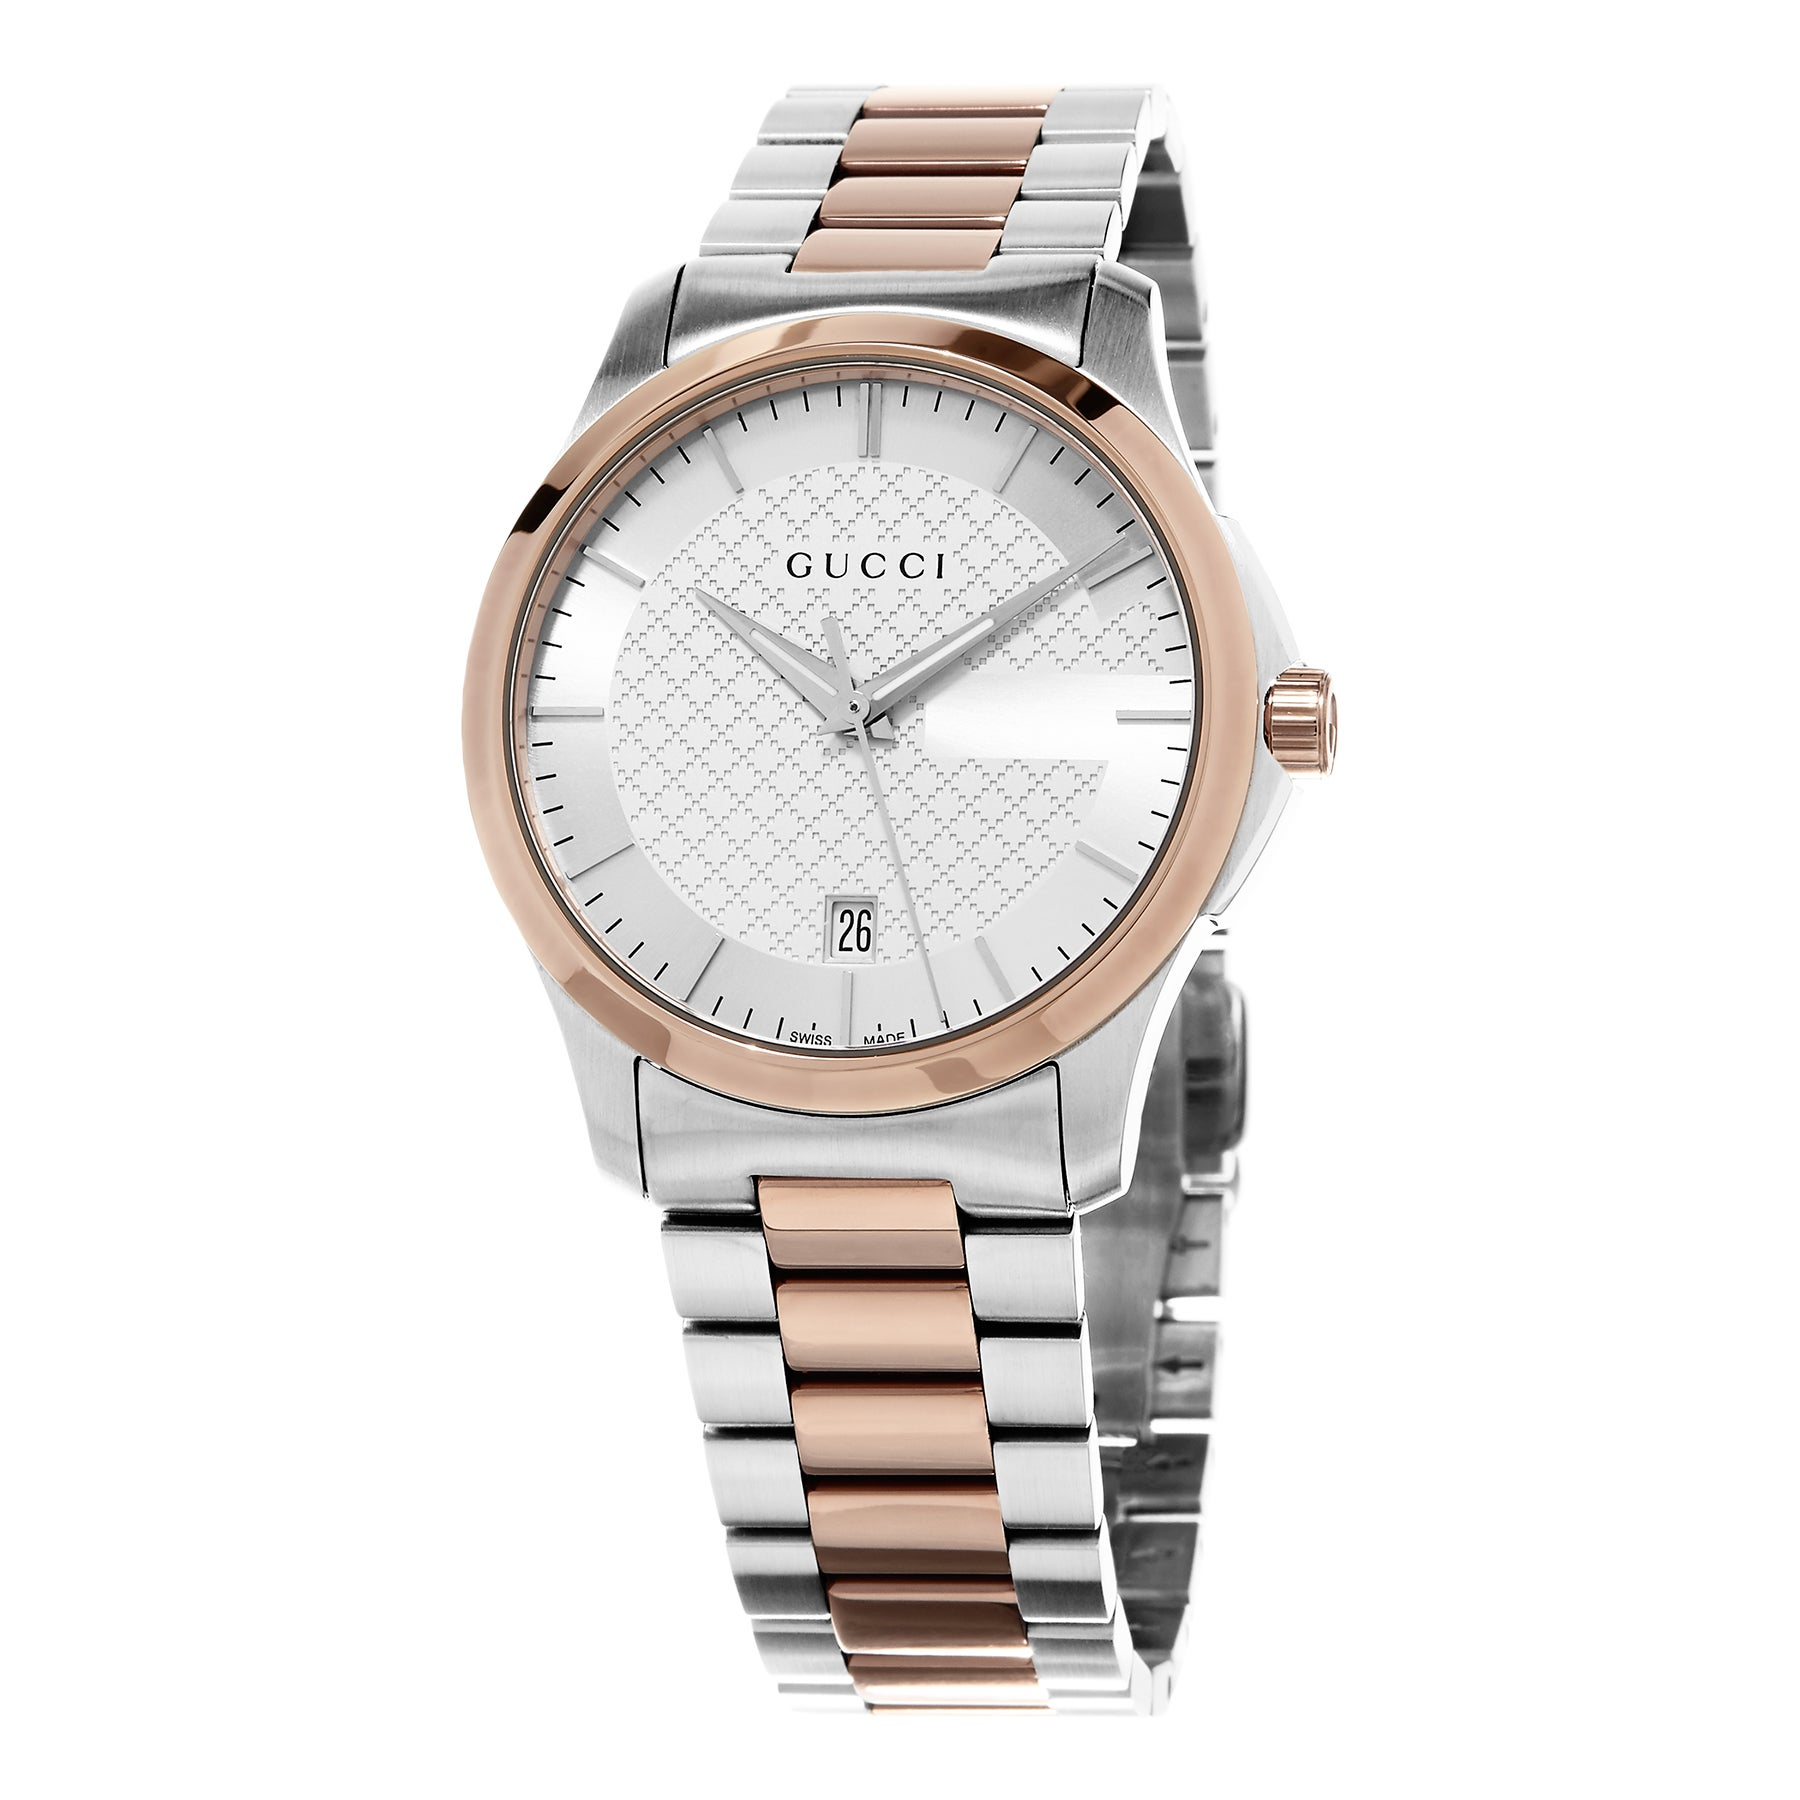 3e88eb15e7c Shop Gucci Women s  Timeless  Silver Dial Two Tone Stainless Steel Swiss  Quartz Watch - Free Shipping Today - Overstock - 10654436